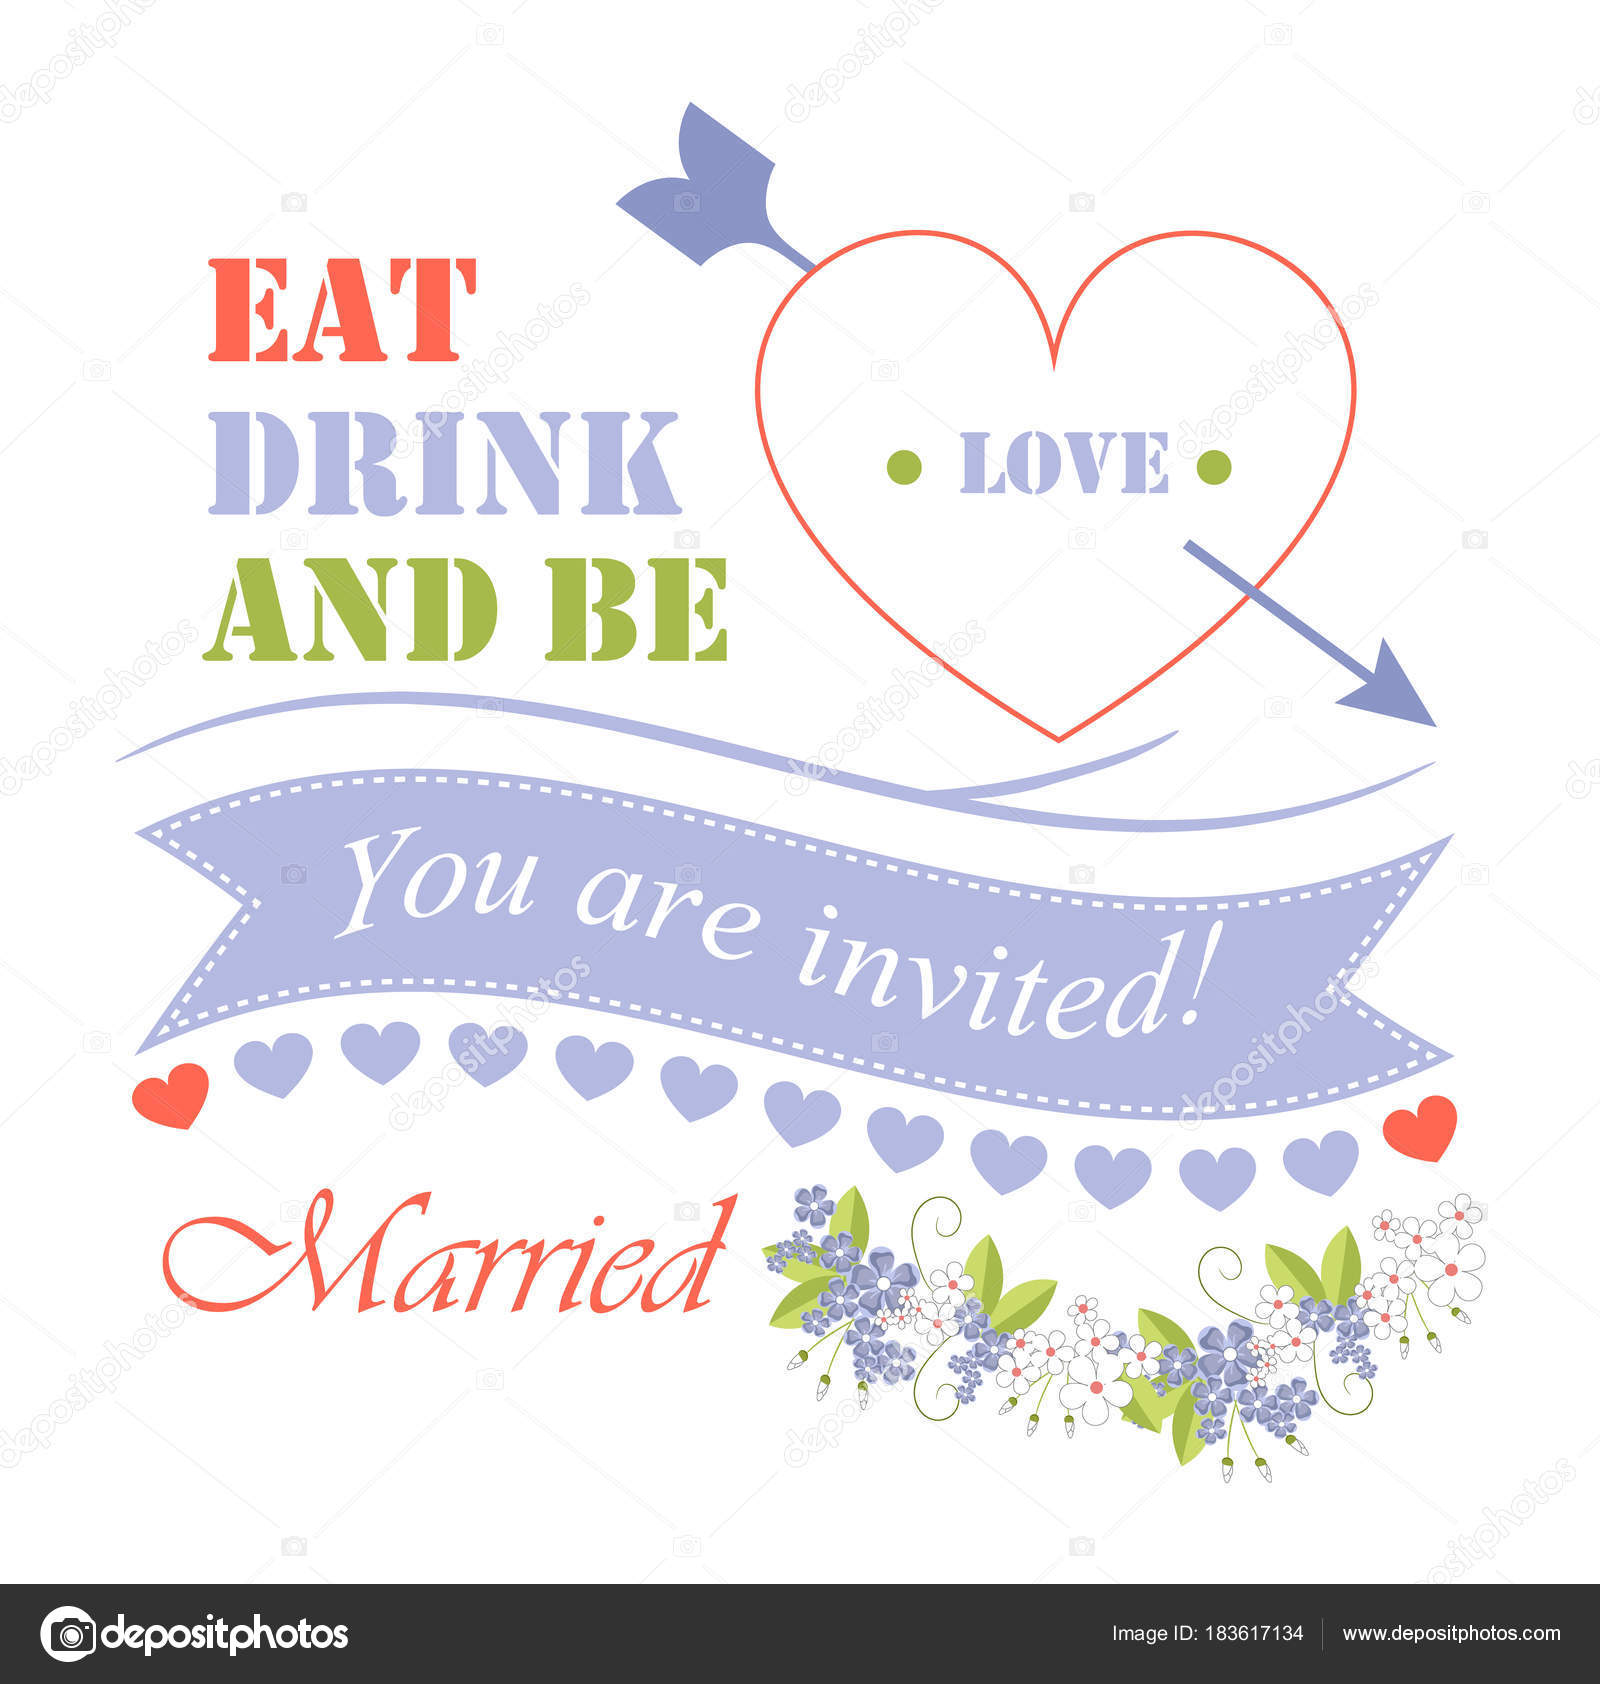 Eat drink and be married vector illustration vetores de stock eat drink and be married you are invited invitation with icons of heart arrow and ribbon with headline flowers isolated on vector illustration vetor stopboris Image collections